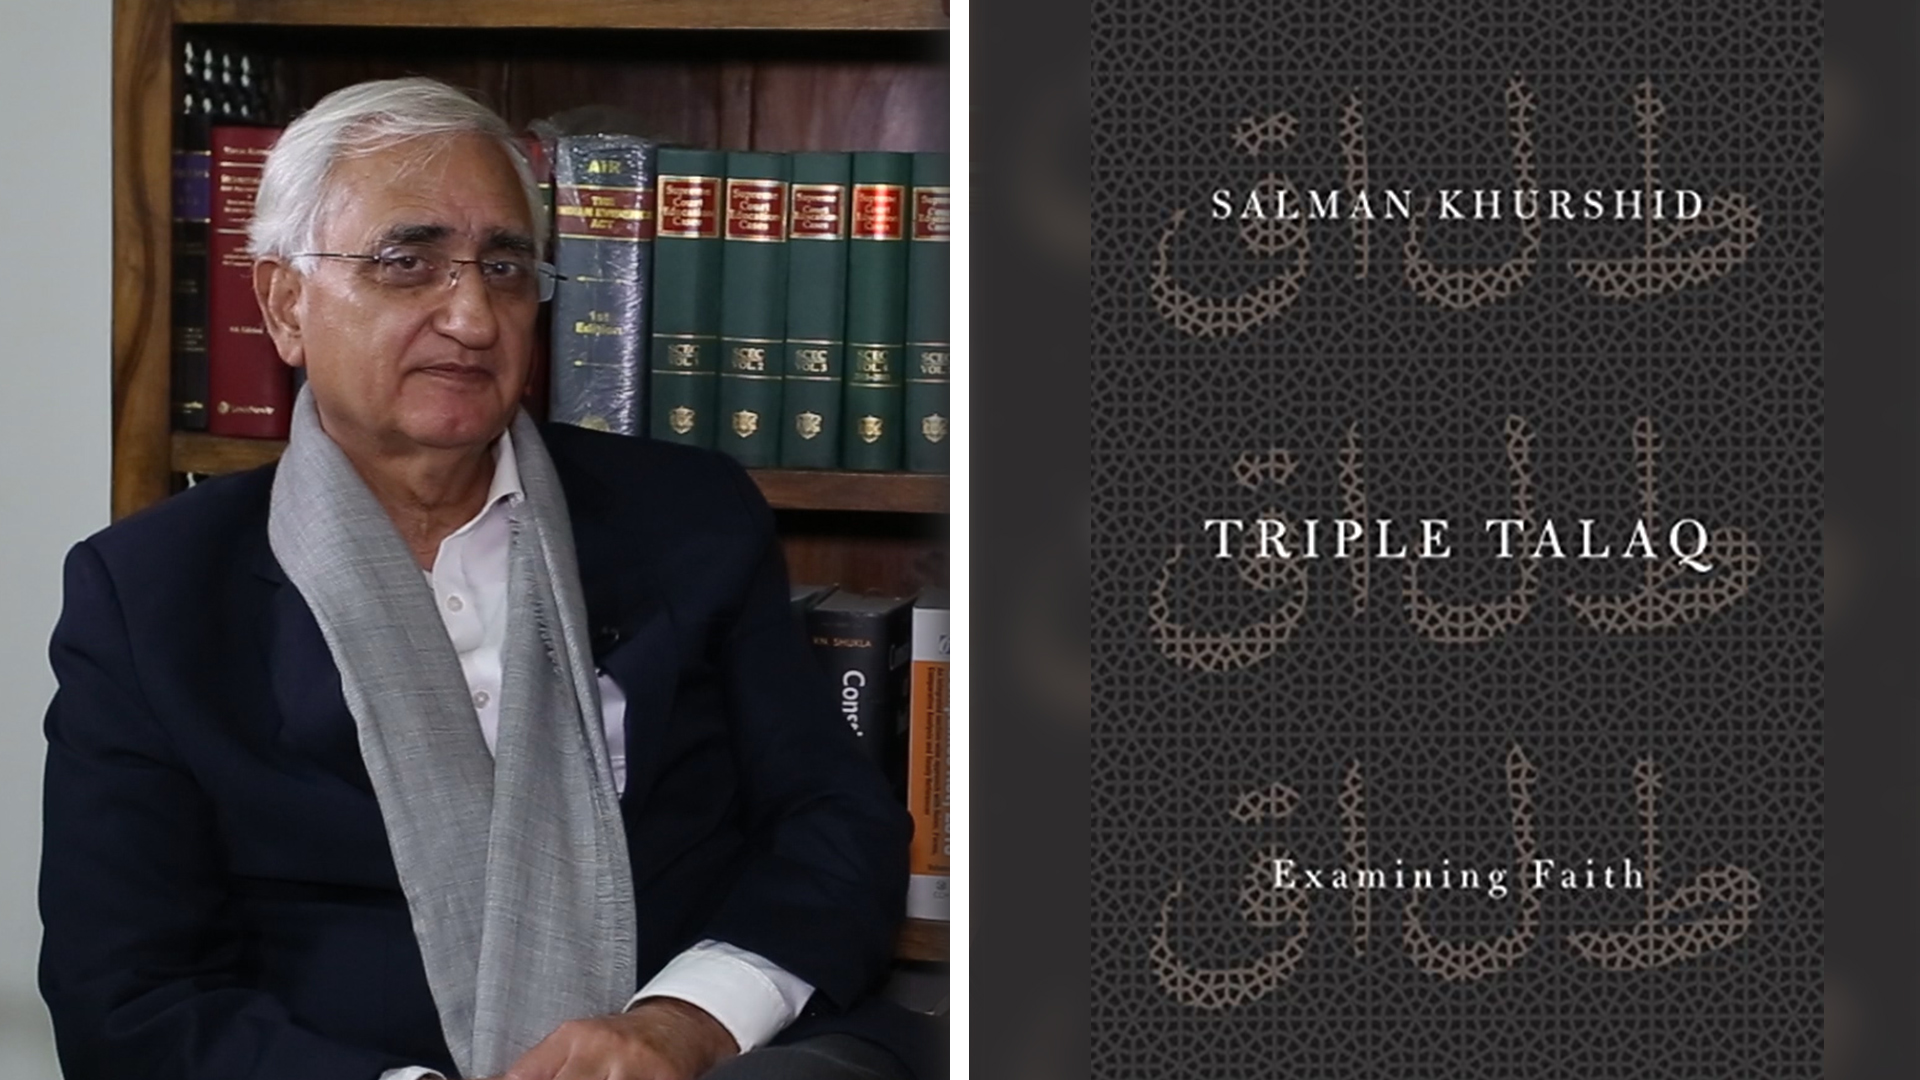 Wide Angle, Episode 22: Salman Khurshid On His Book On Triple Talaq